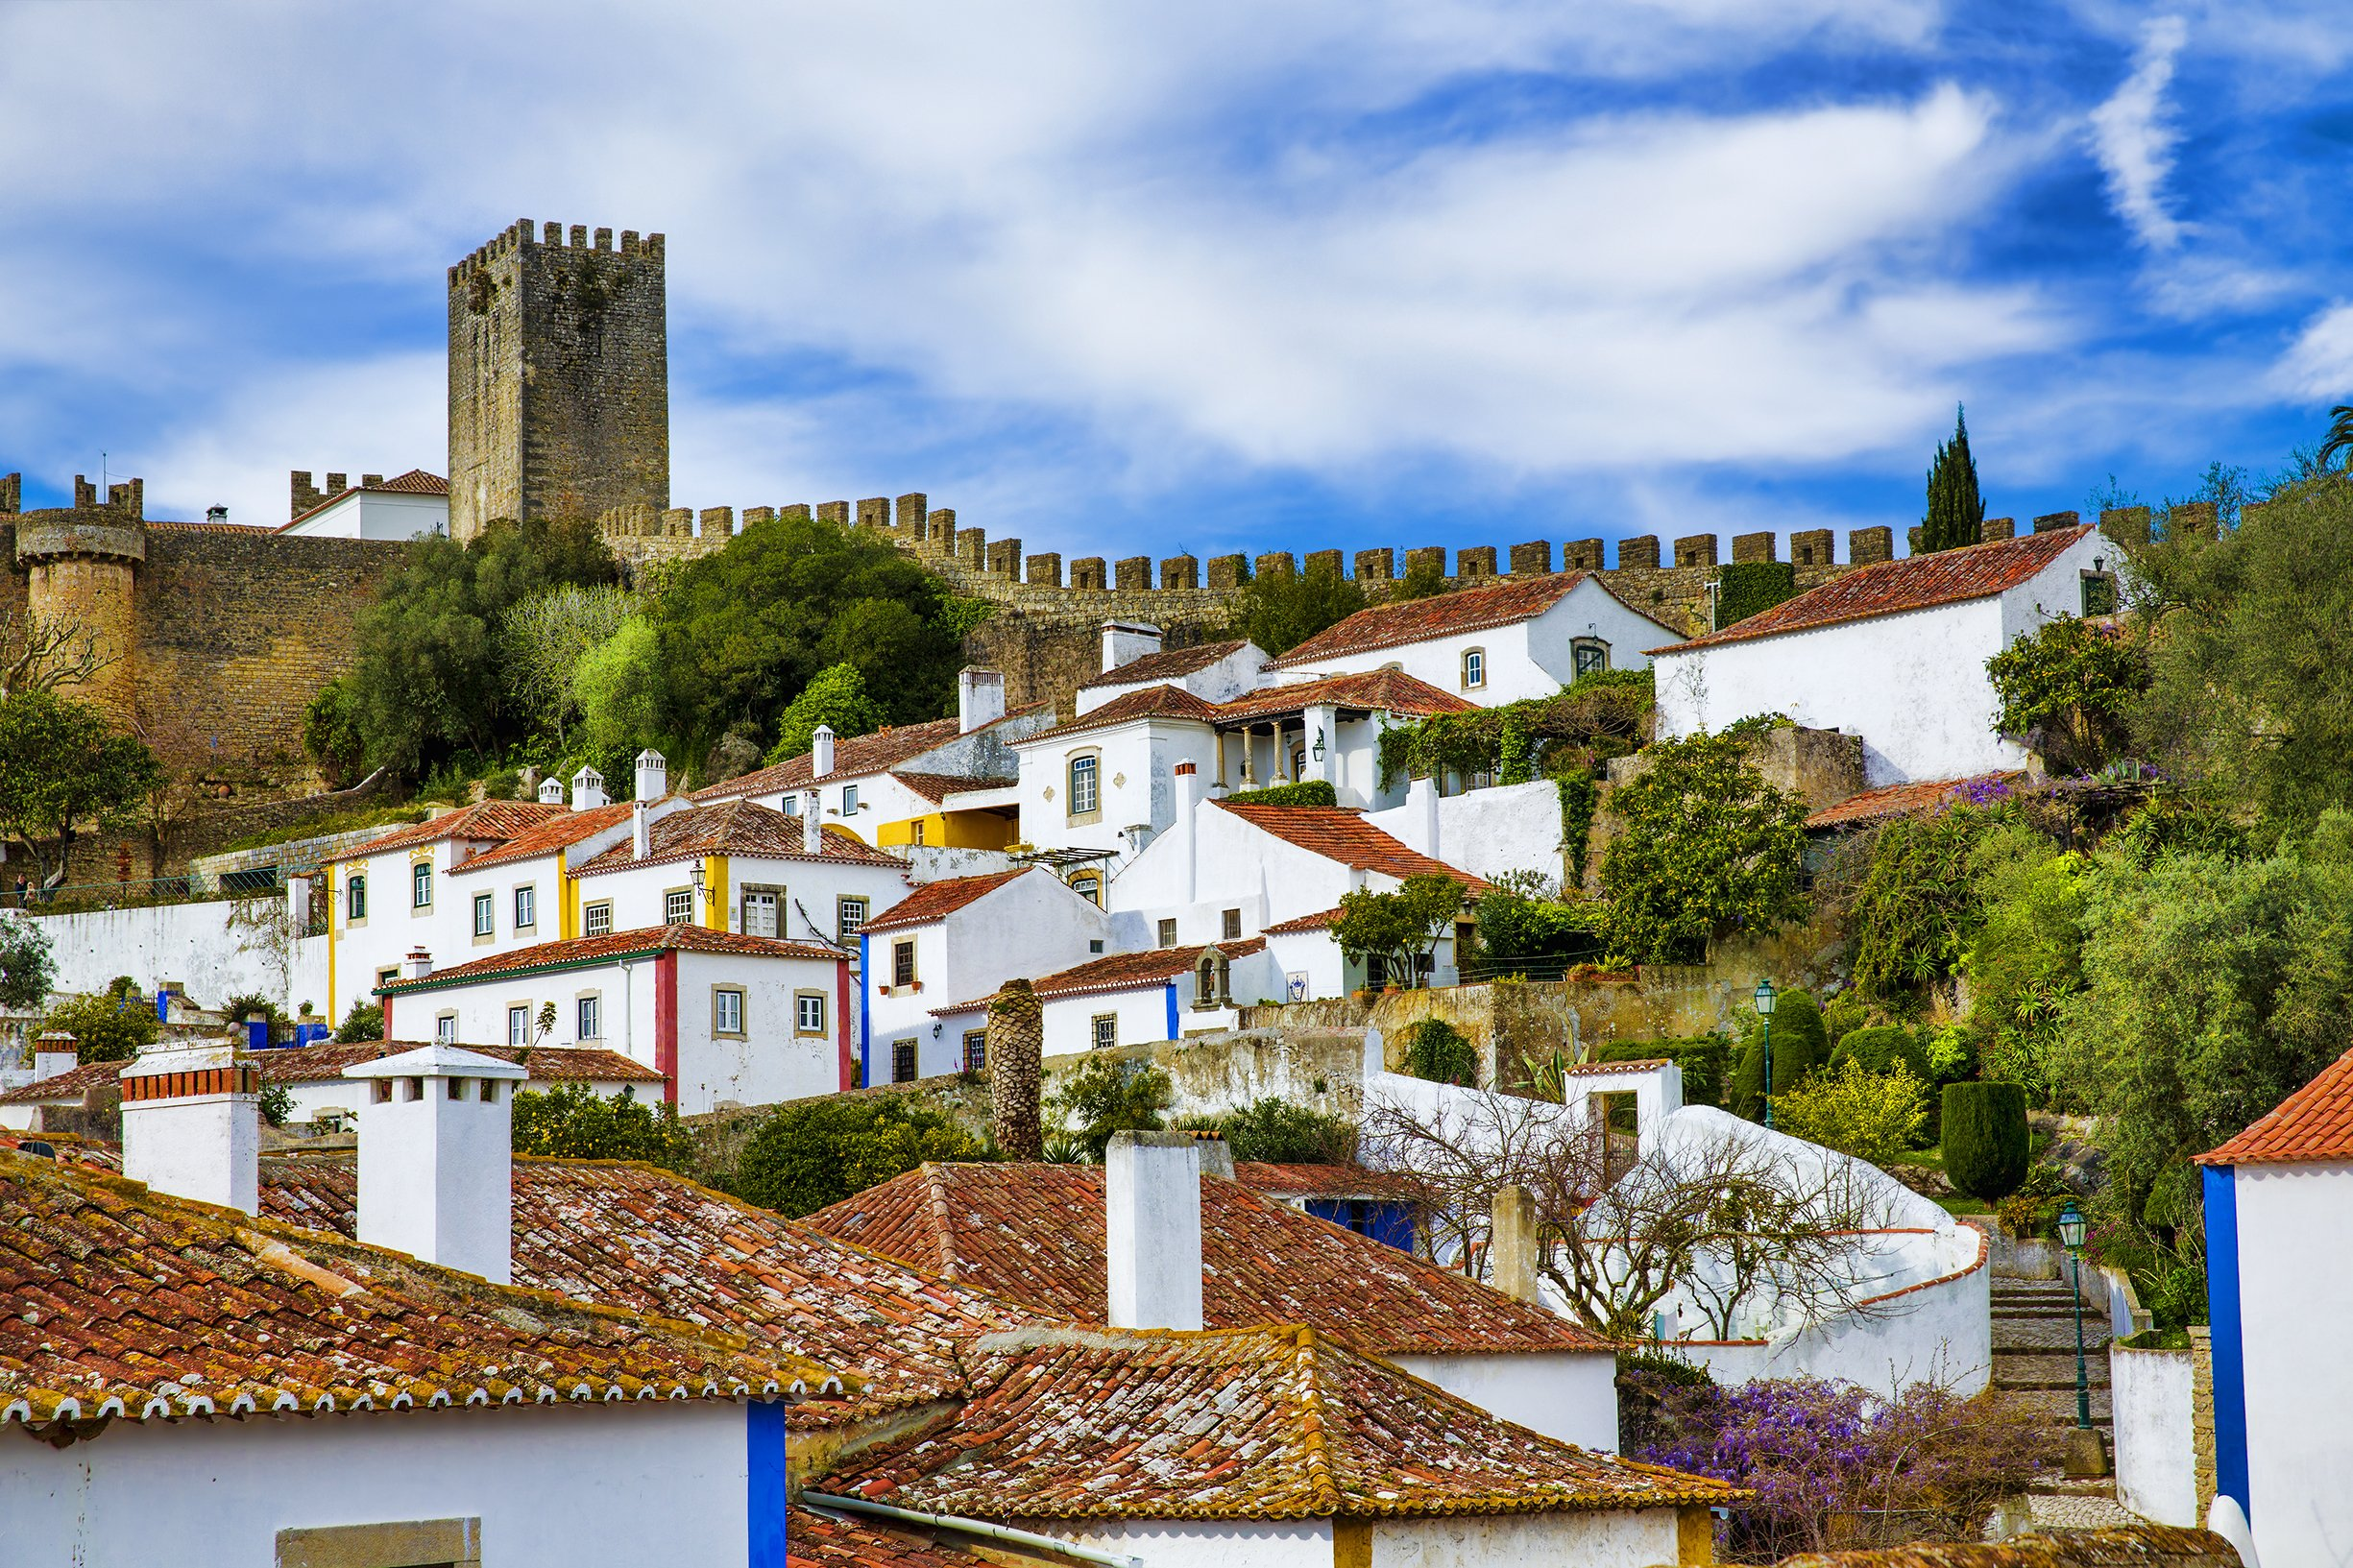 Explore The Walls Of Obidos On The Fatima Tour From Lisbon